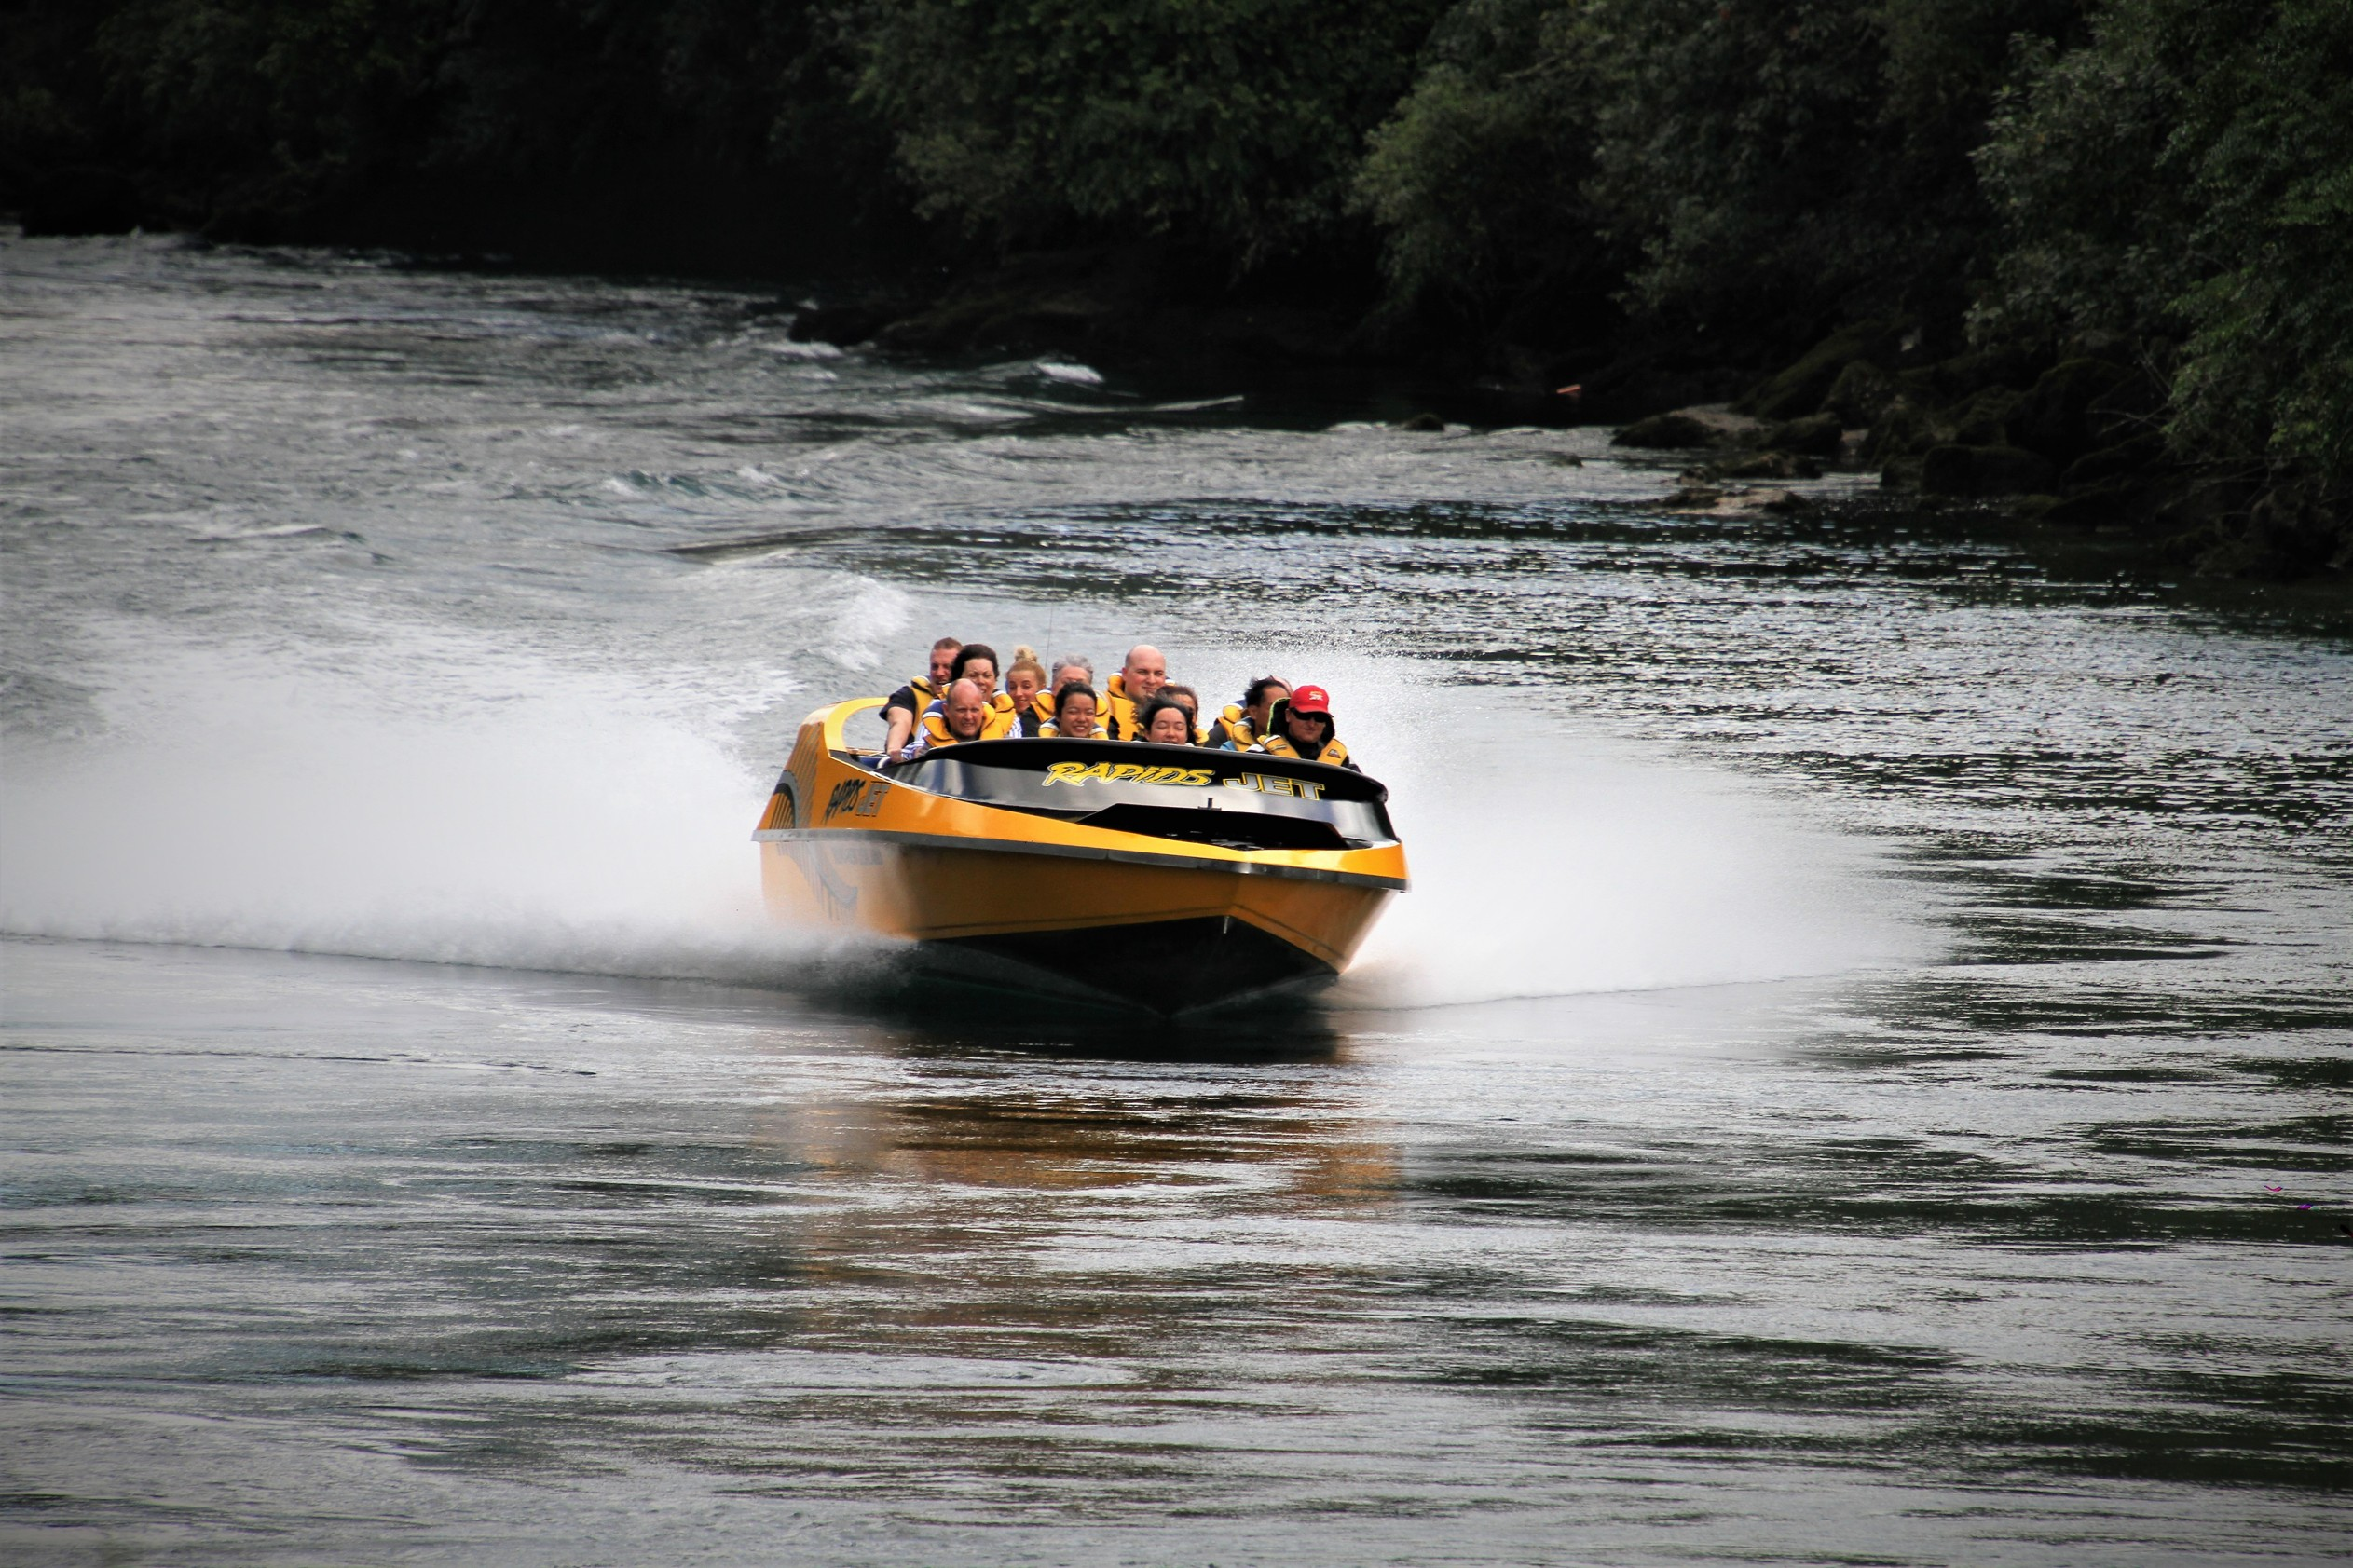 https://bubo.sk/uploads/galleries/5025/marekmeluch_novyzeland_jetboating-rapidjets.jpg